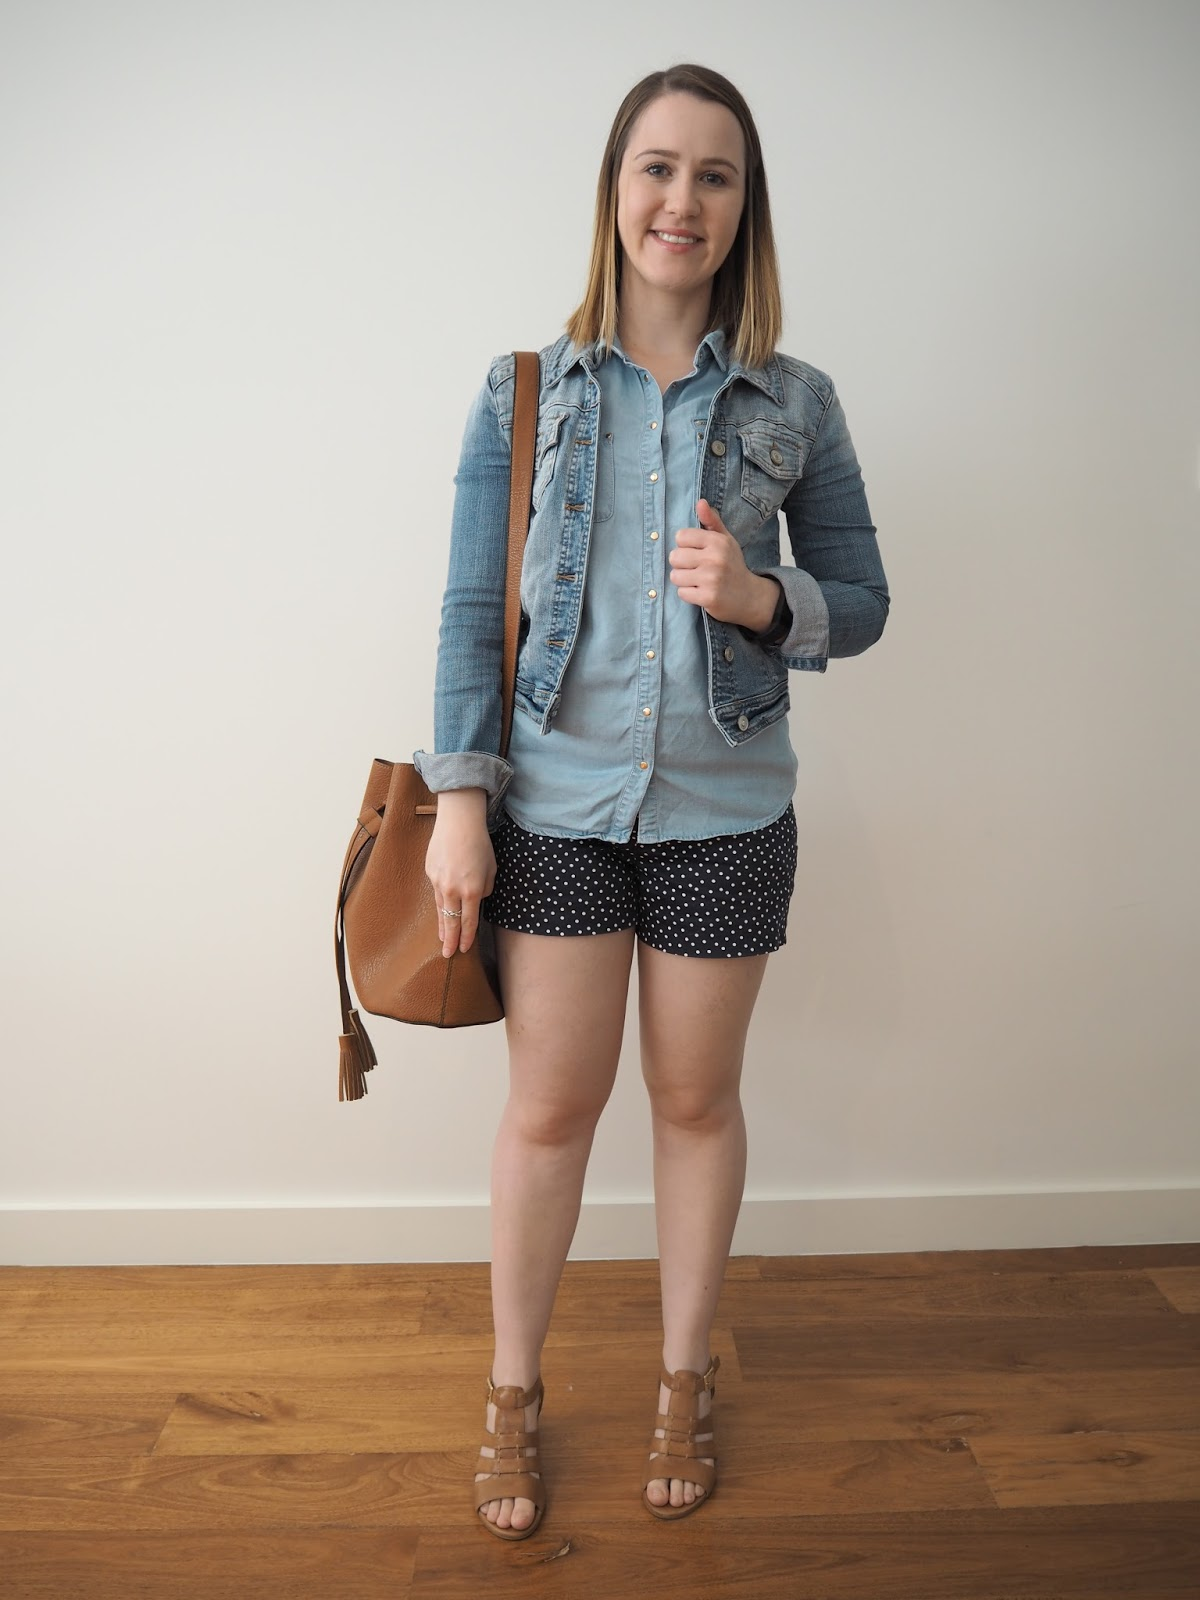 blue high waisted shorts, chambray sleeveless shirt, denim jacket, tan block heel sandals, summer outfit, spring outfit, tan bucket bag